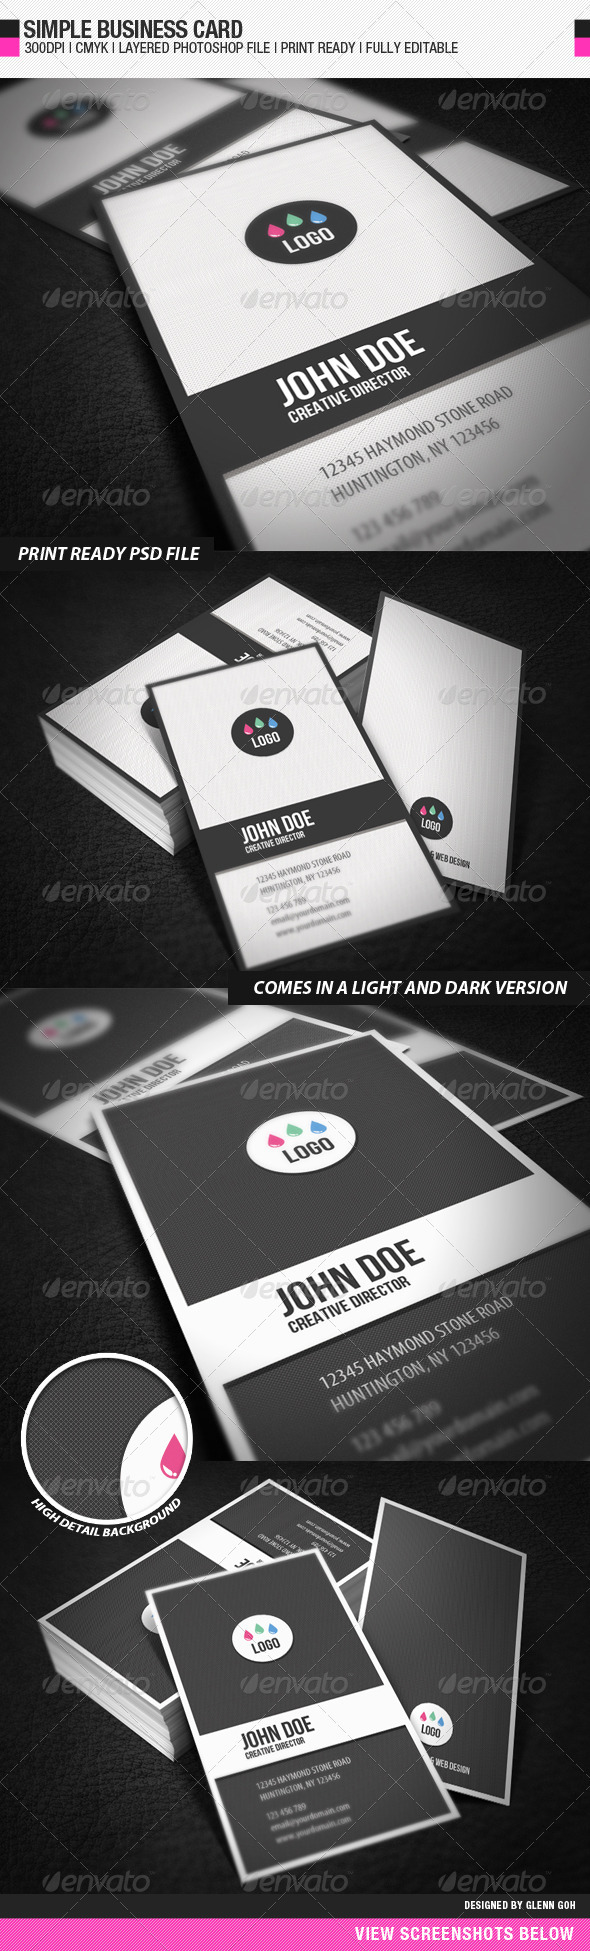 GraphicRiver Simple Business Card 603580